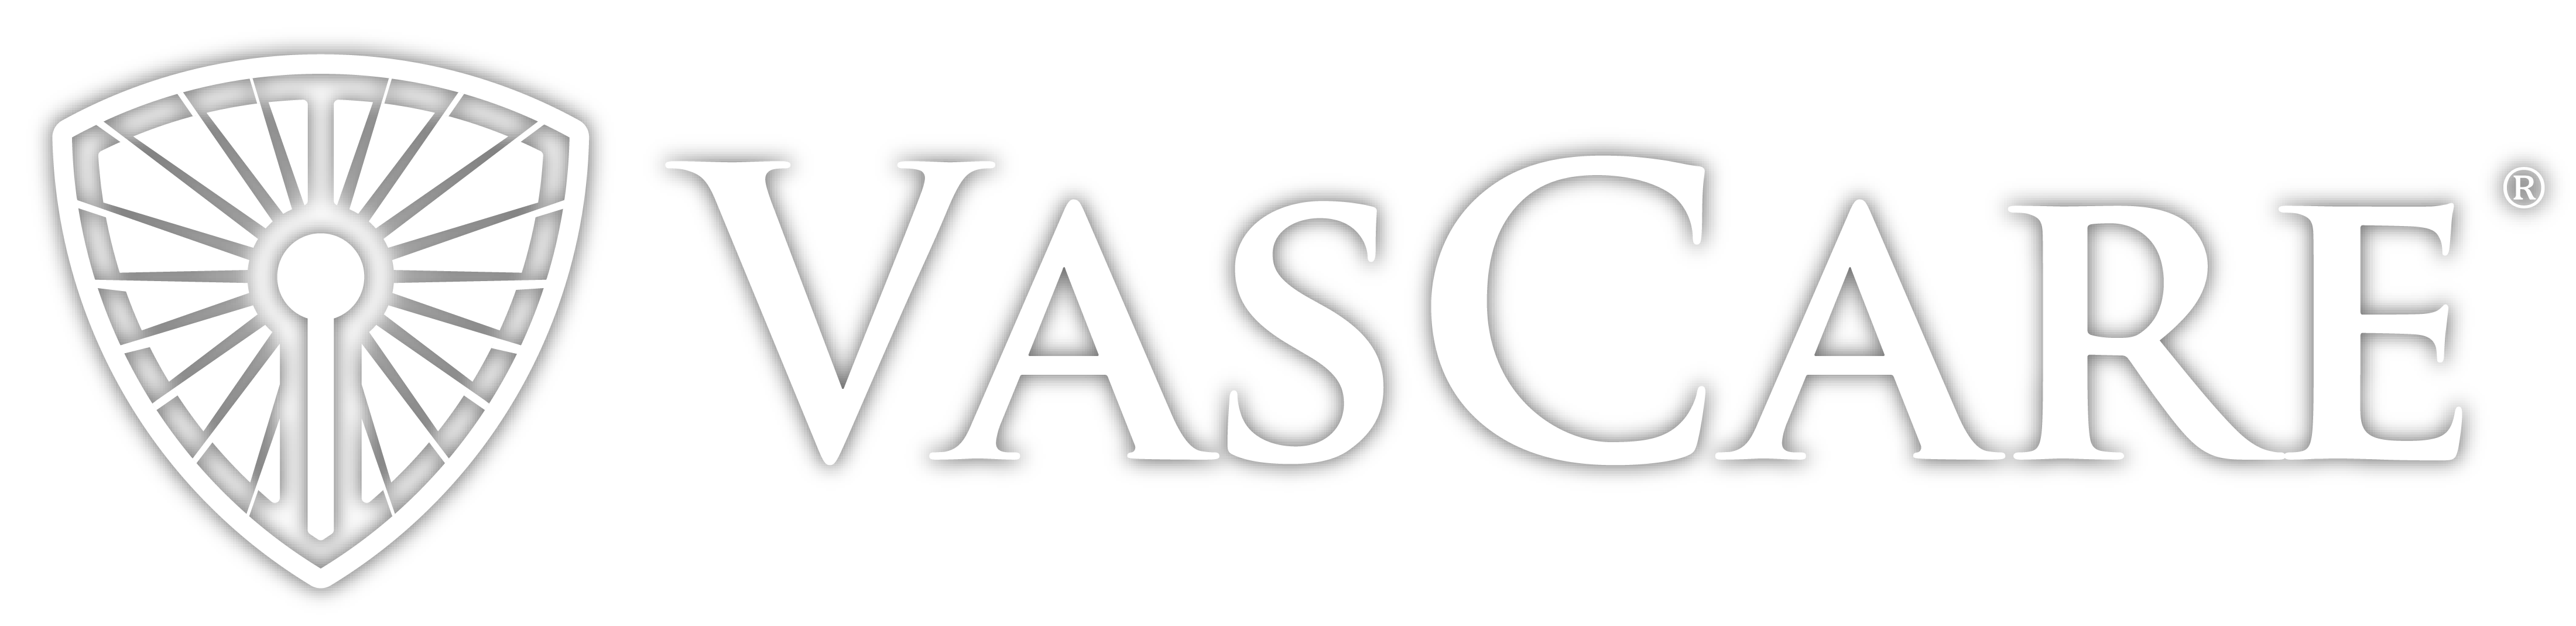 vascare-logo-1color-Horizontal-R-white-shadow-01